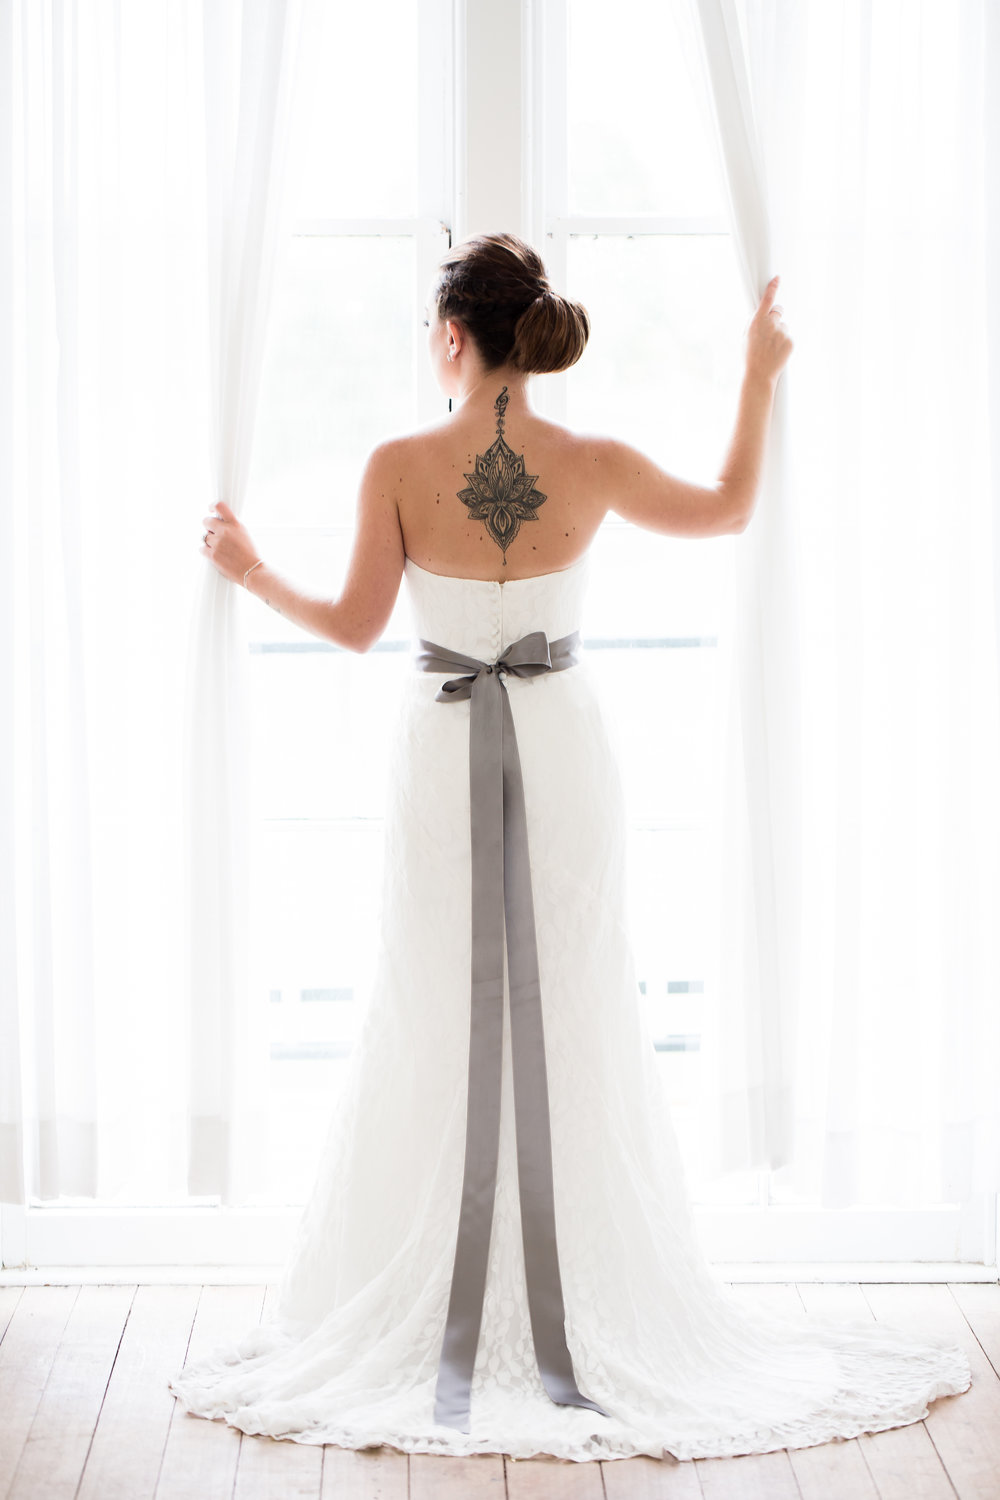 Gandjos_Tinko_BackSeatPhotography_backseatphoto30.JPG